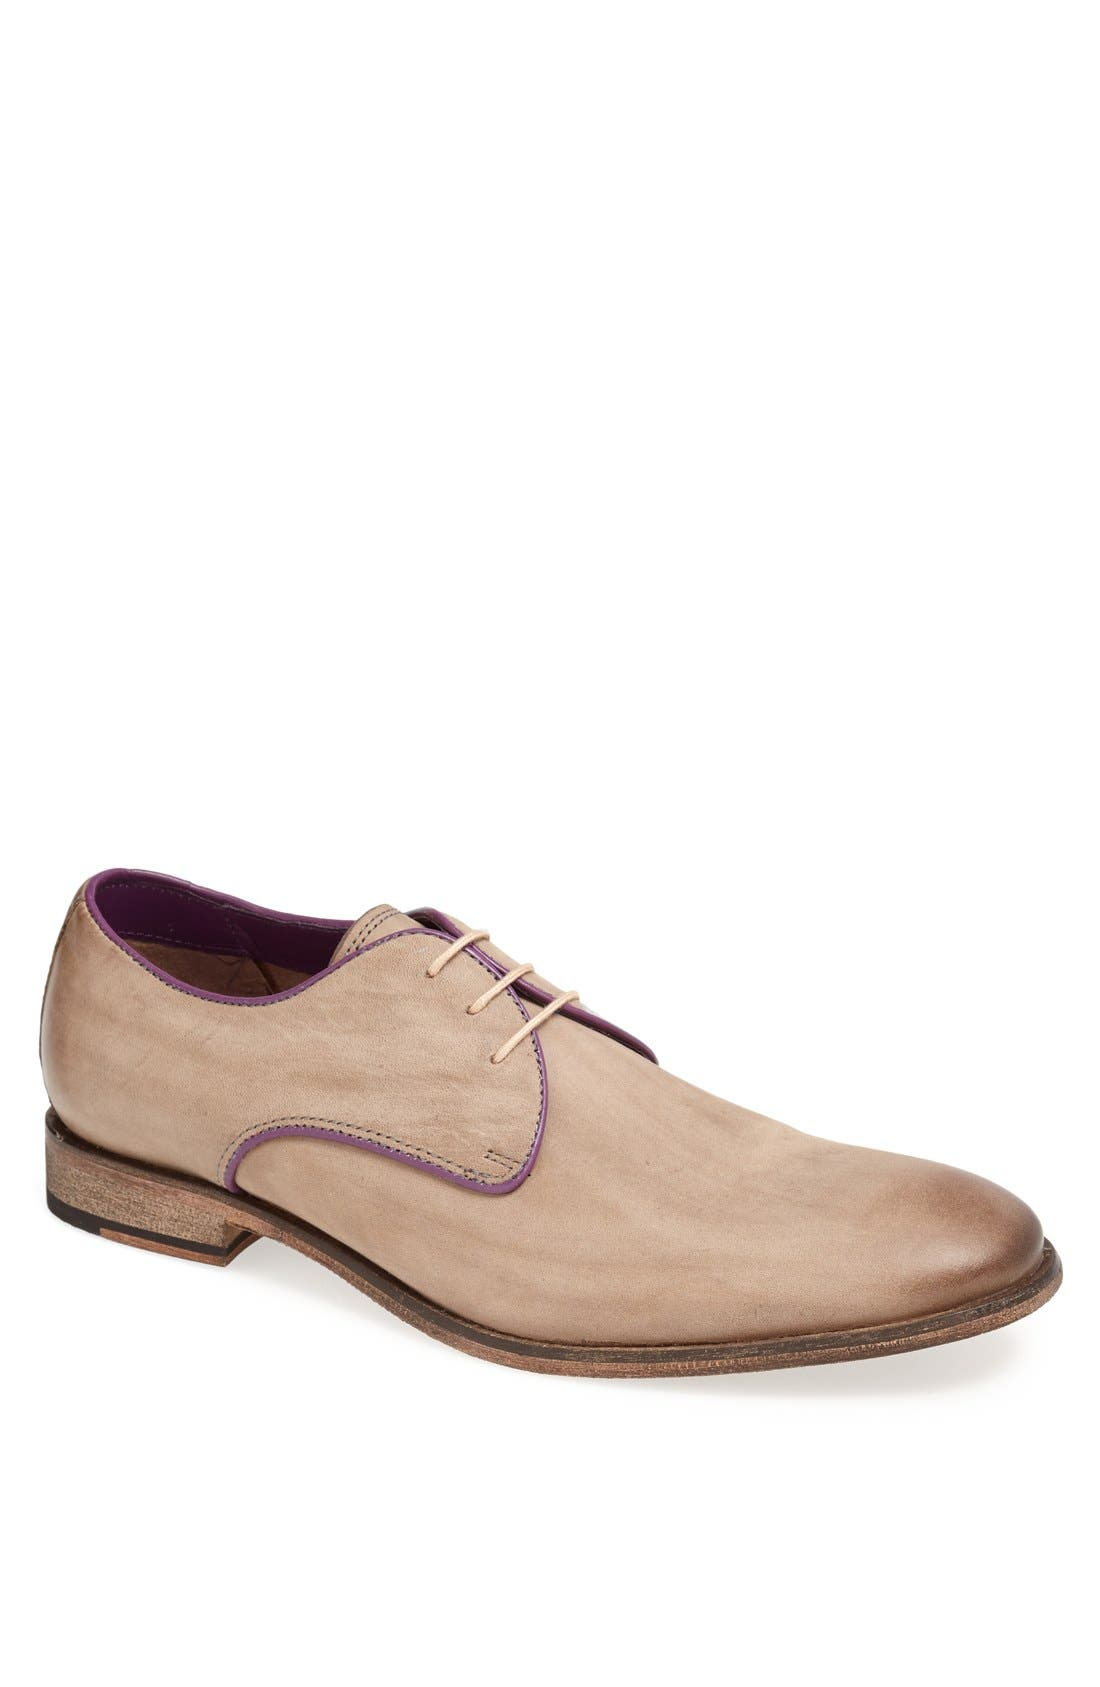 Alternate Image 1 Selected - J&M 1850 'Donegan' Plain Toe Derby (Online Only)